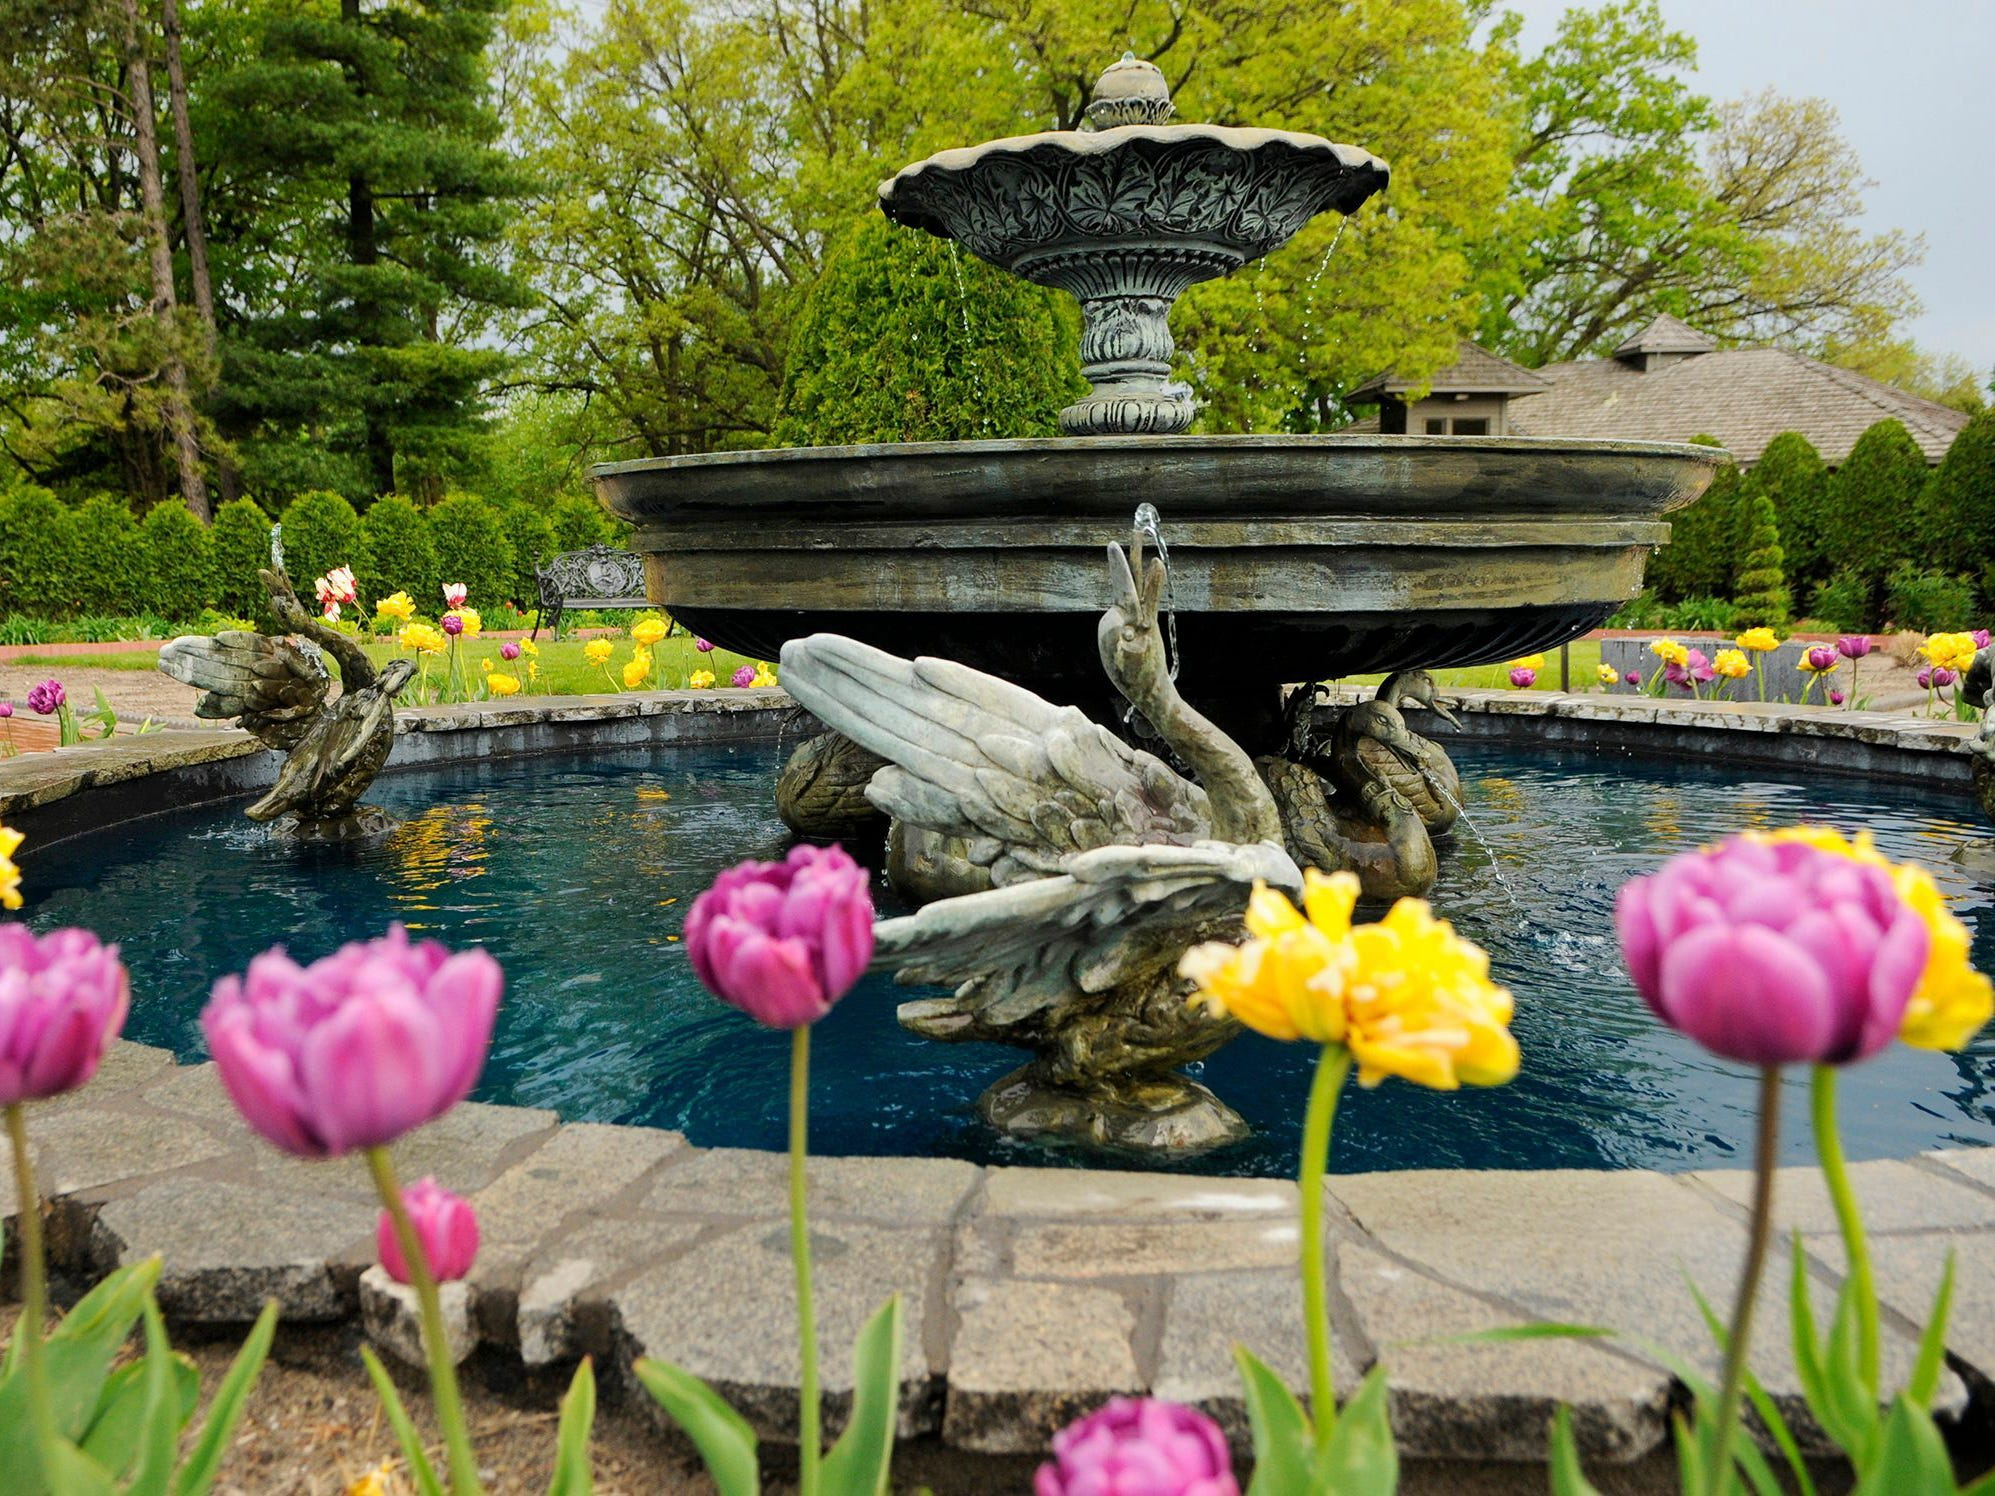 The Windsor Court Fountain is pictured in this file photo taken before the fountain was damaged sometime in January 2019. Thieves stole two cast-iron ducks and two cast-iron geese from the fountain, police said.